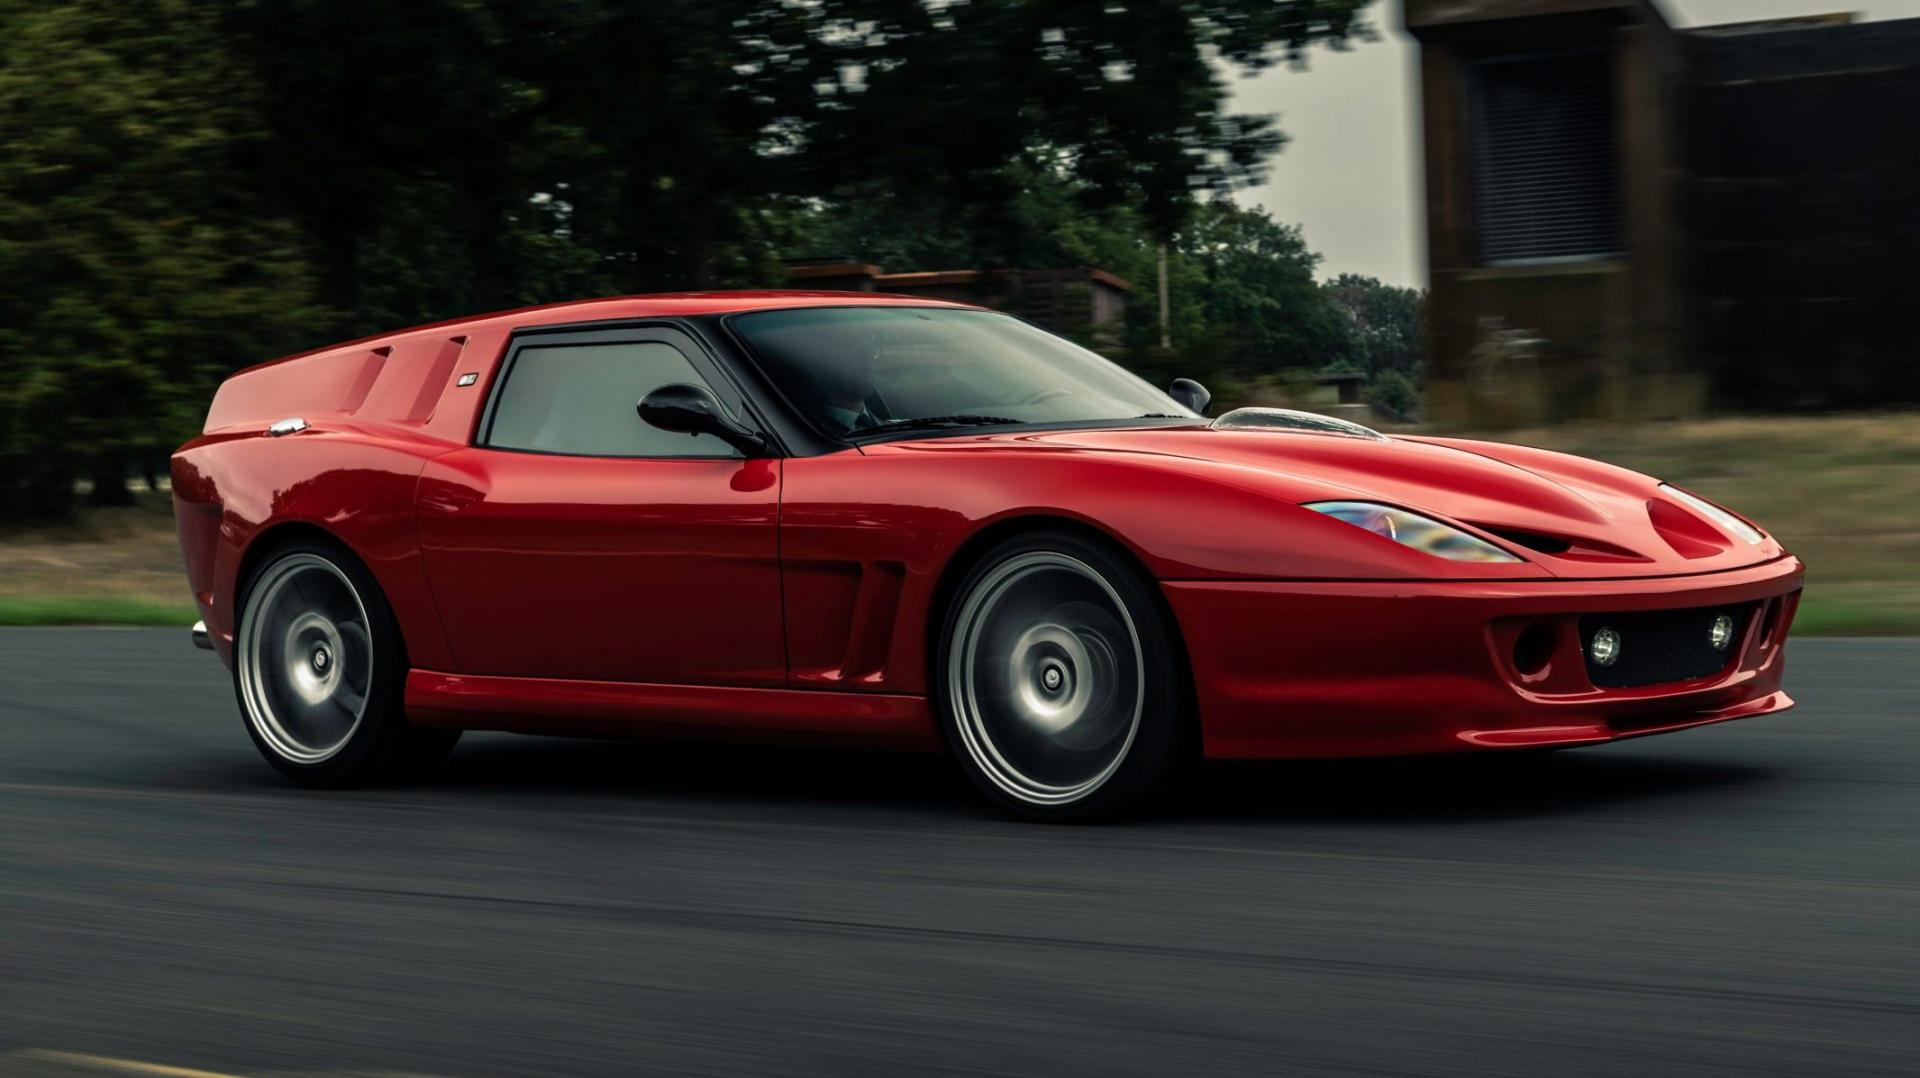 Breadvan Hommage is een Ferrari 550 Shooting Brake